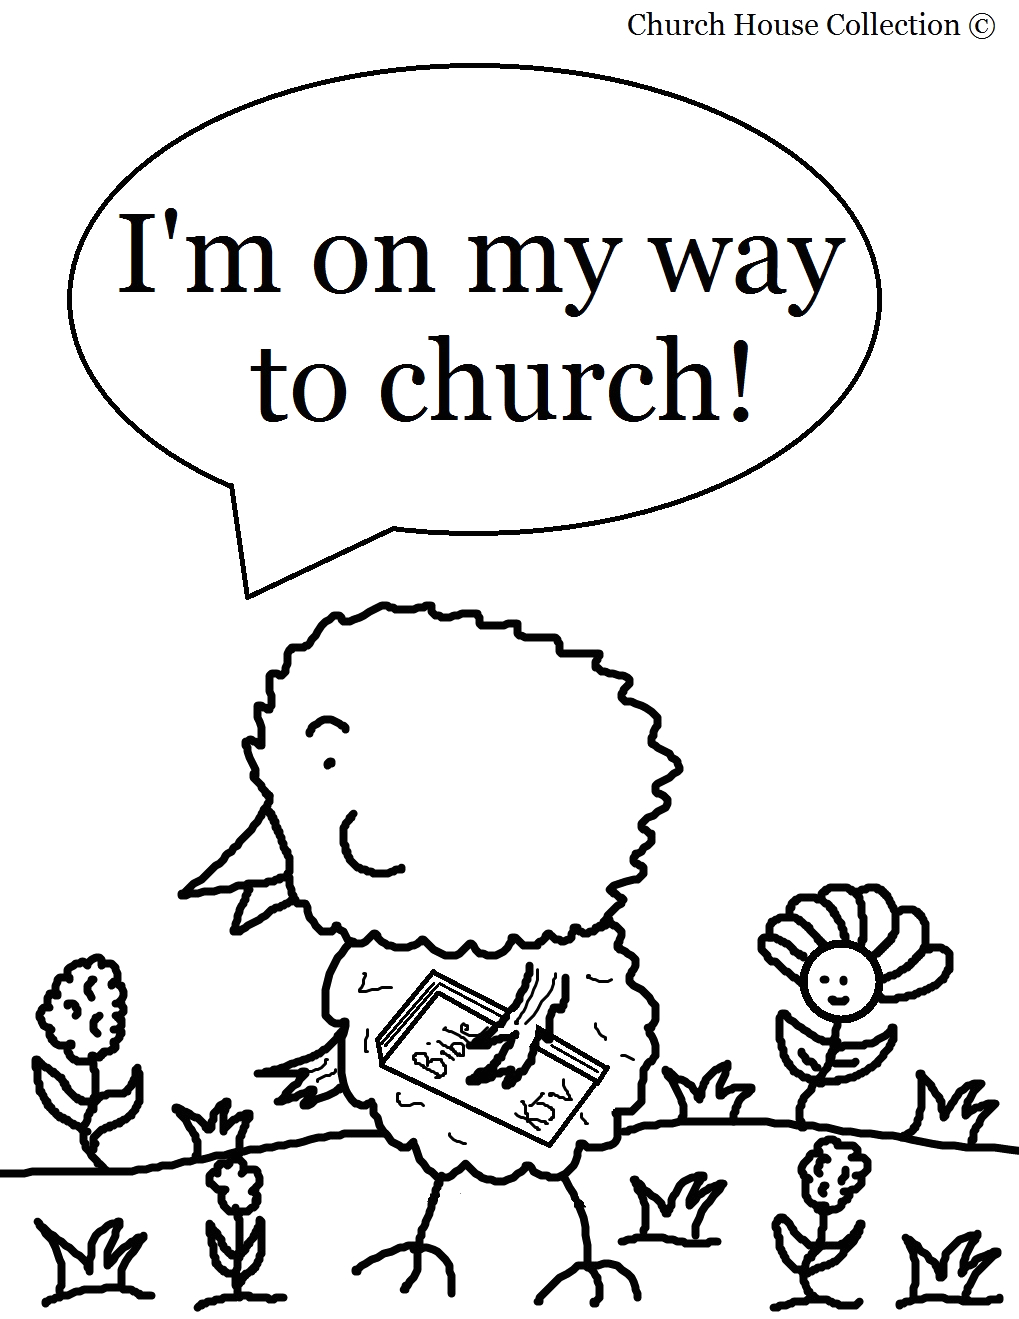 Free Sunday School Coloring Pages for Easter Easter Chick Coloring Page for Sunday School